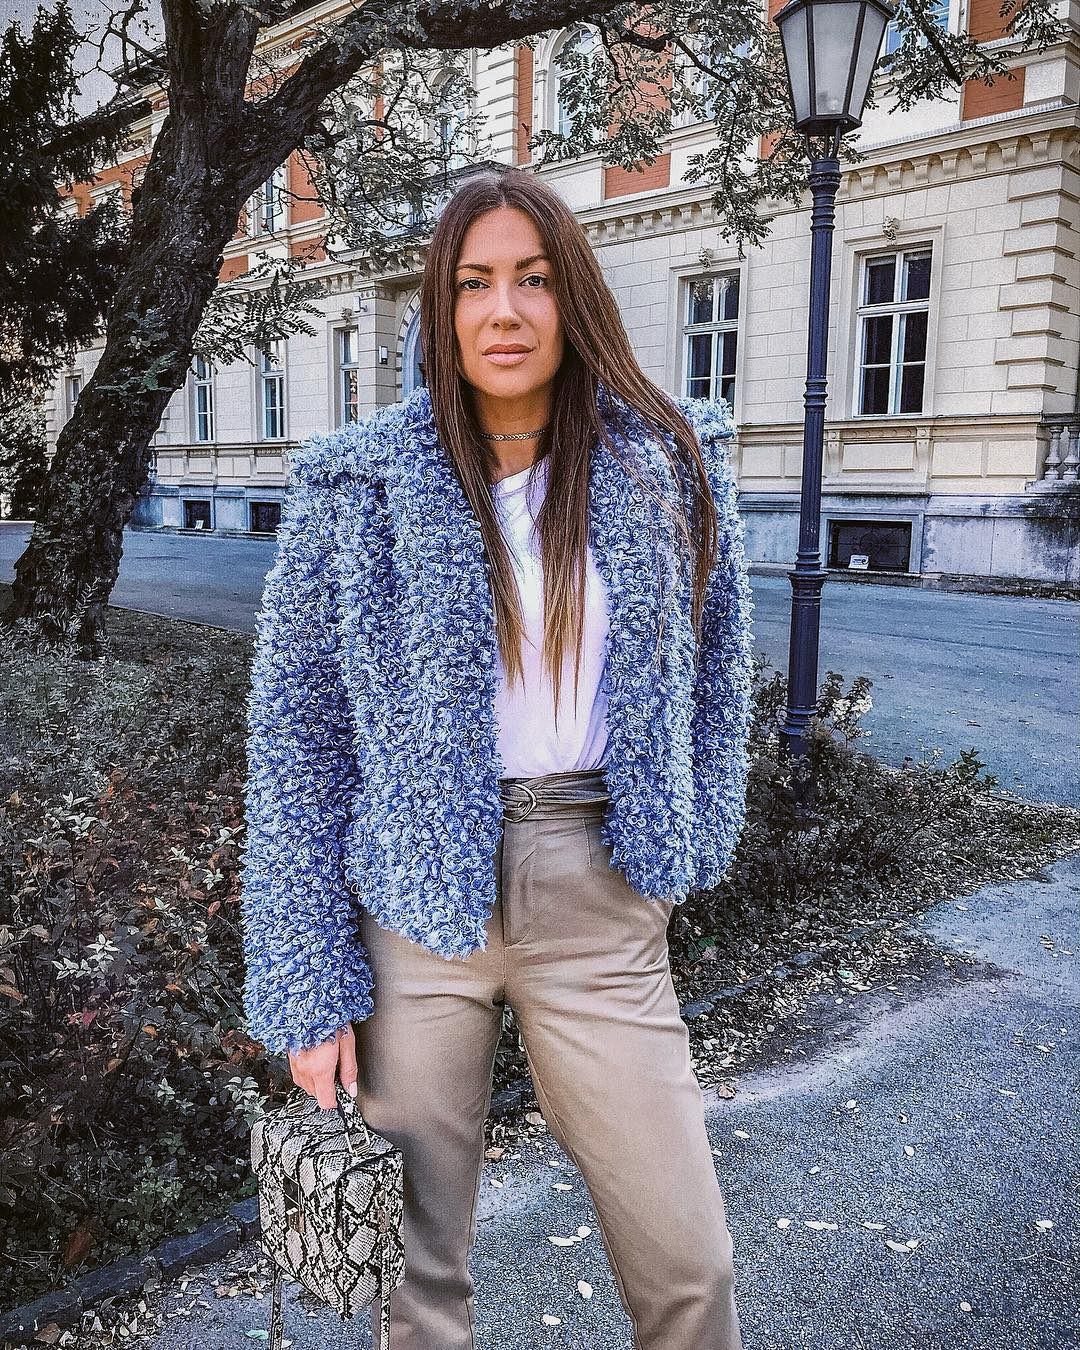 Blue faux fur jacket with a white top and gray trousers for fall 2021